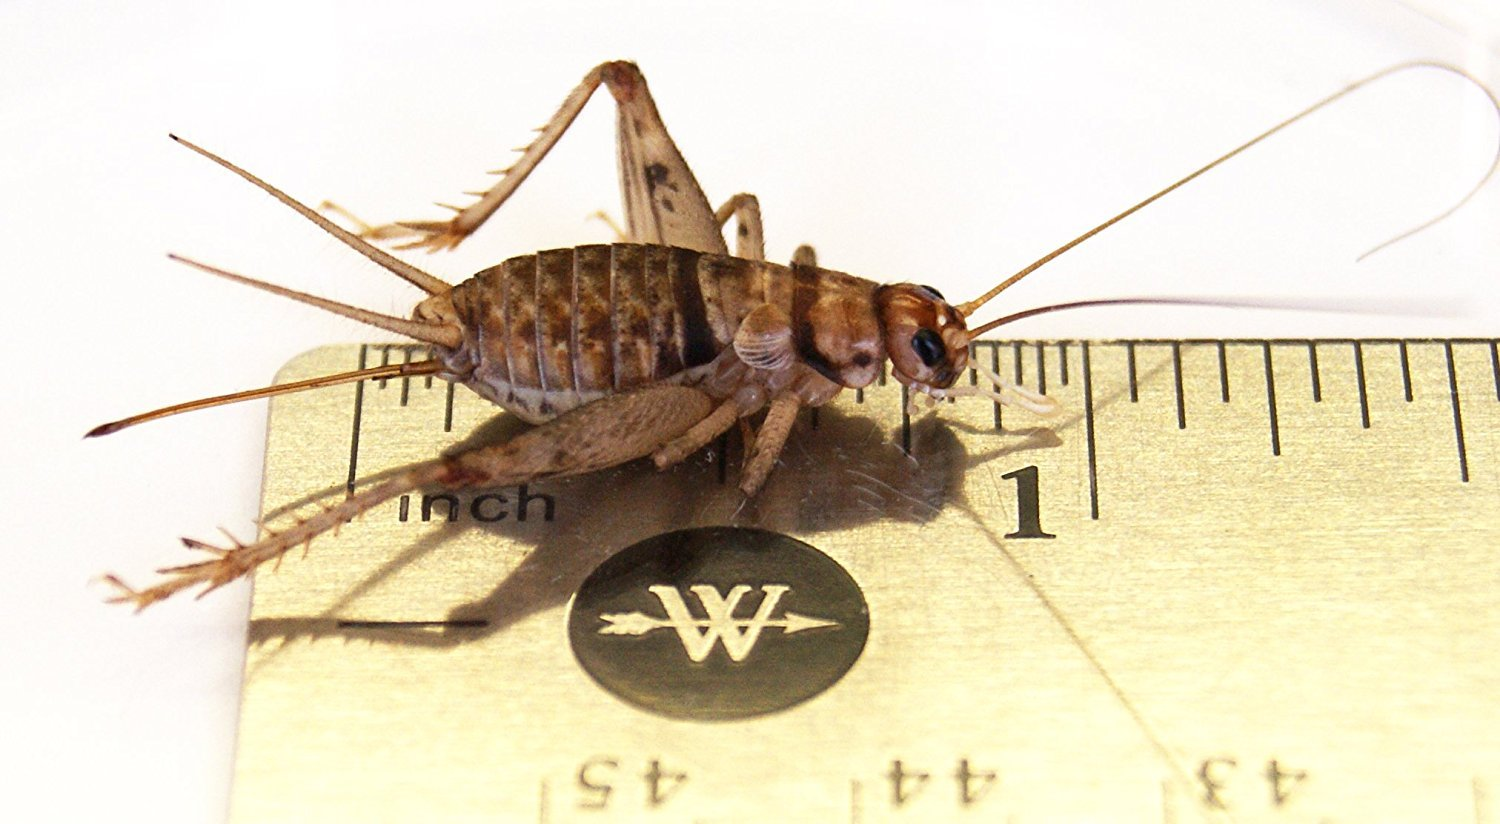 Josh's Frogs 1'' Large Adult Banded Crickets (1000 Count) by Josh's Frogs (Image #3)